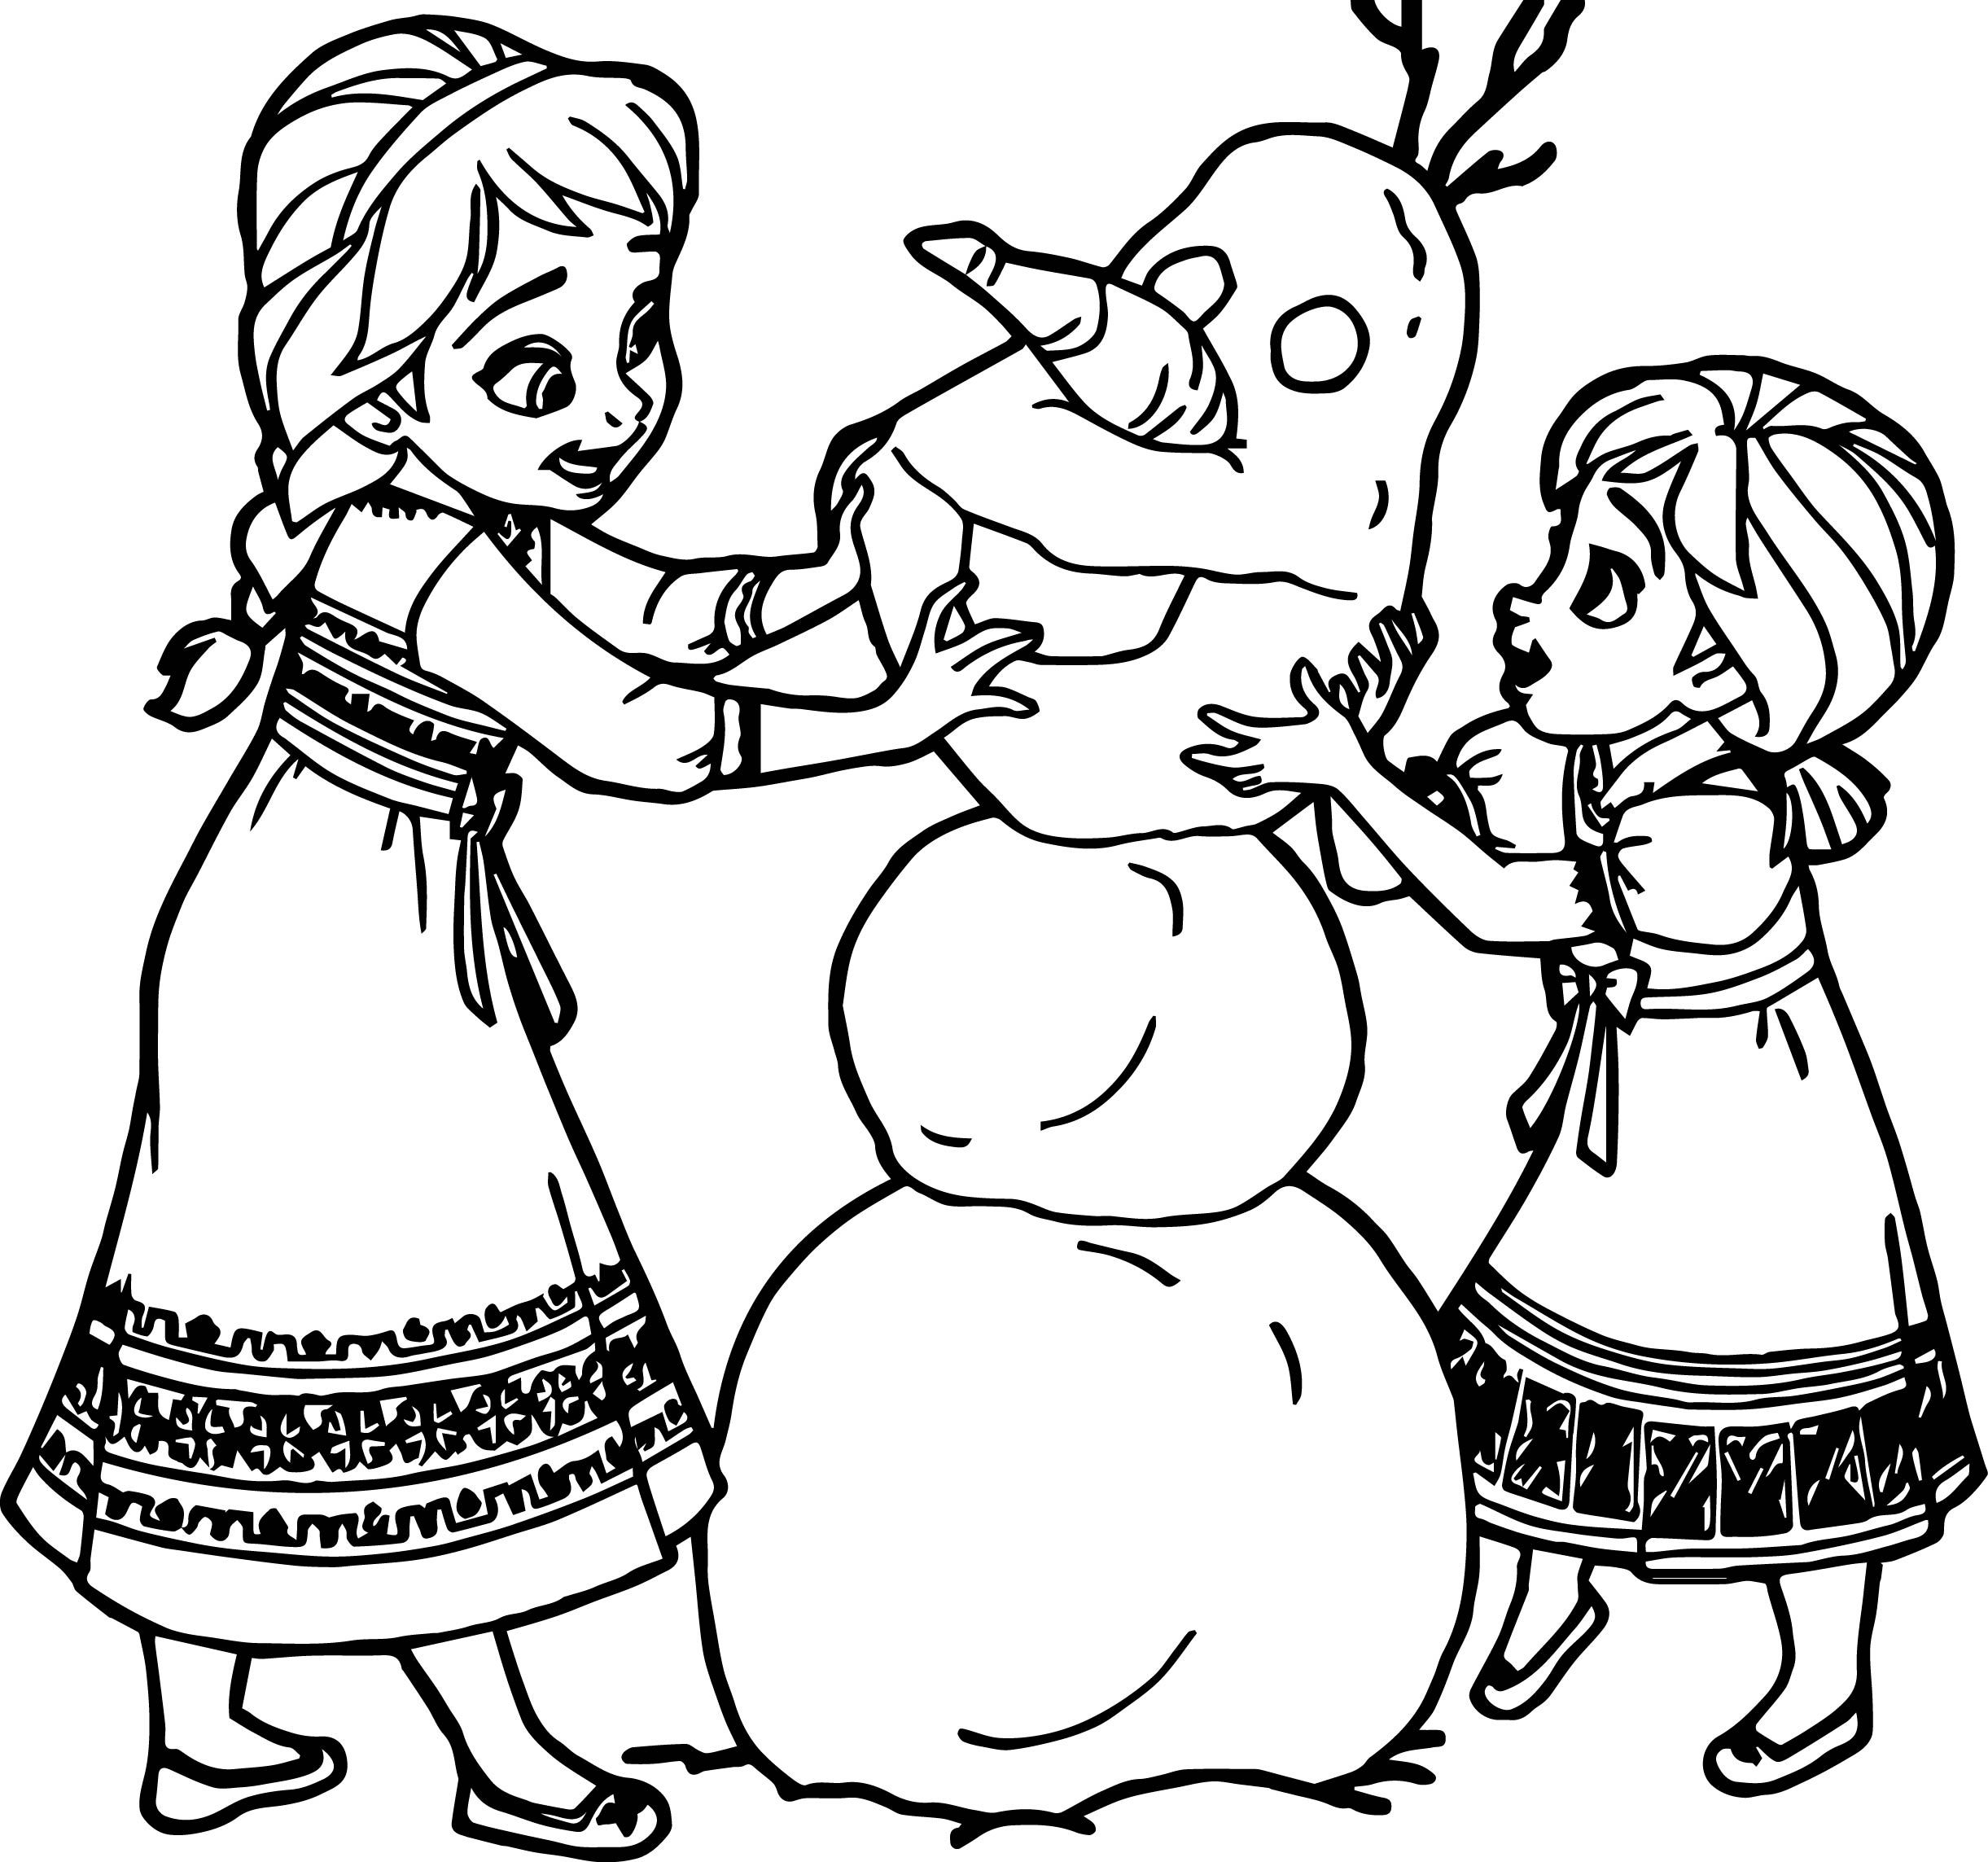 Awesome Young Anna Elsa Snow Man Coloring Page Snowman Coloring Pages Mermaid Coloring Pages Coloring Pages